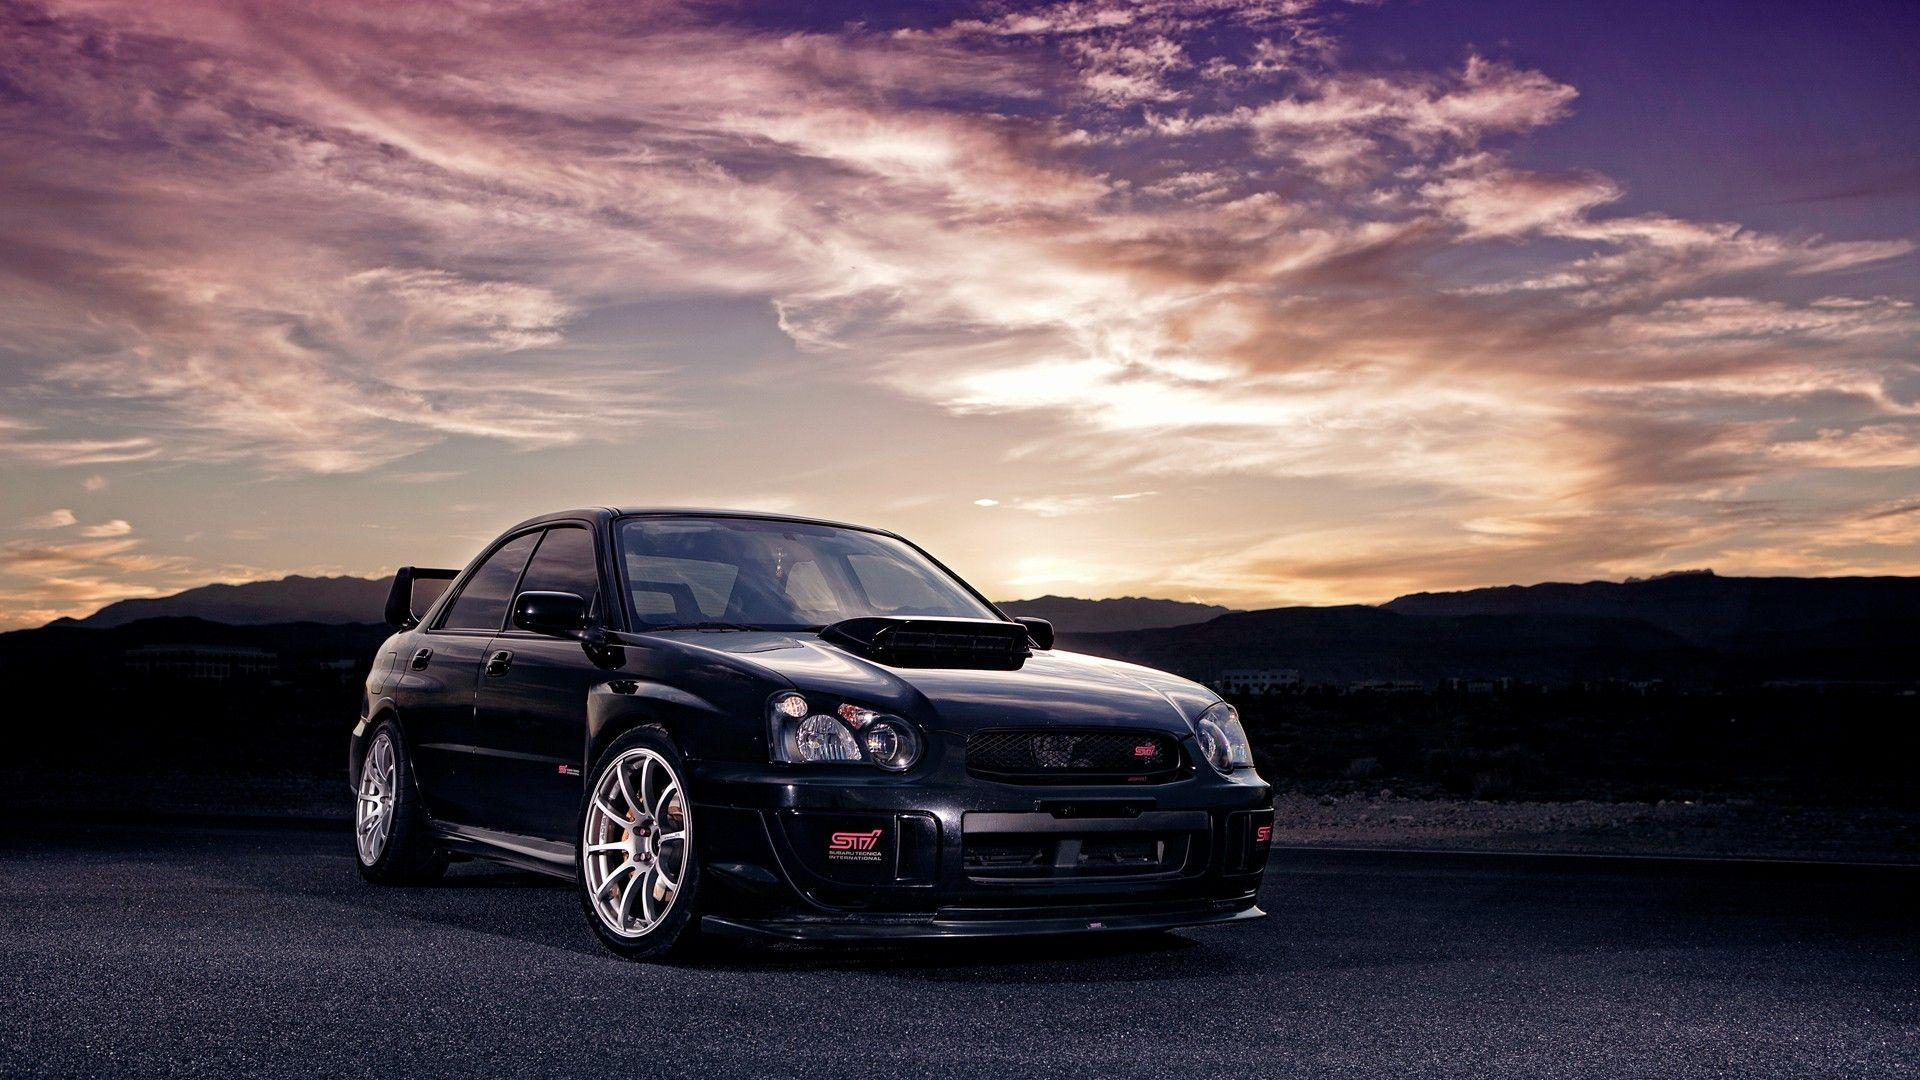 Wallpaper Blink - Subaru WRX Wallpaper HD 4 - 1920 X 1080 for ...